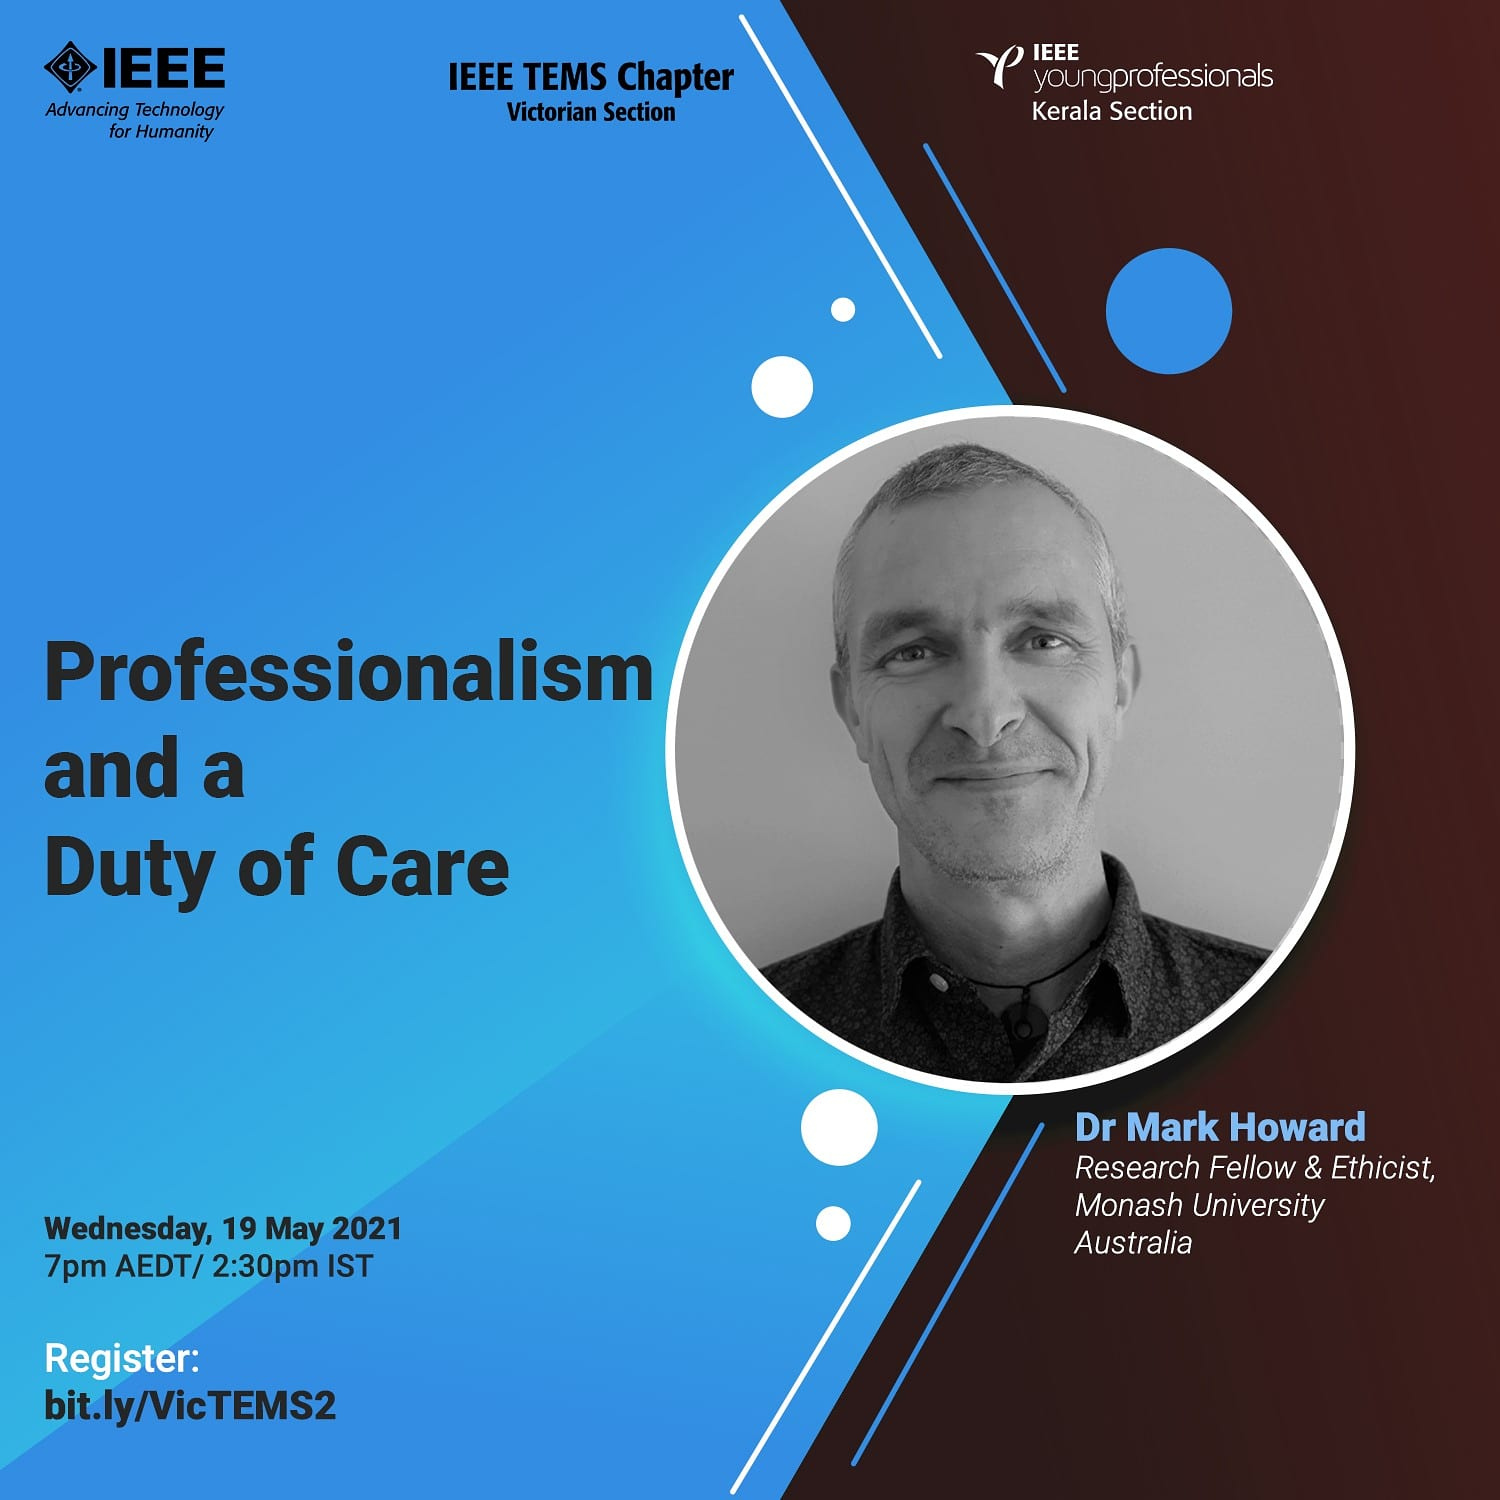 Professionalism and Duty of Care